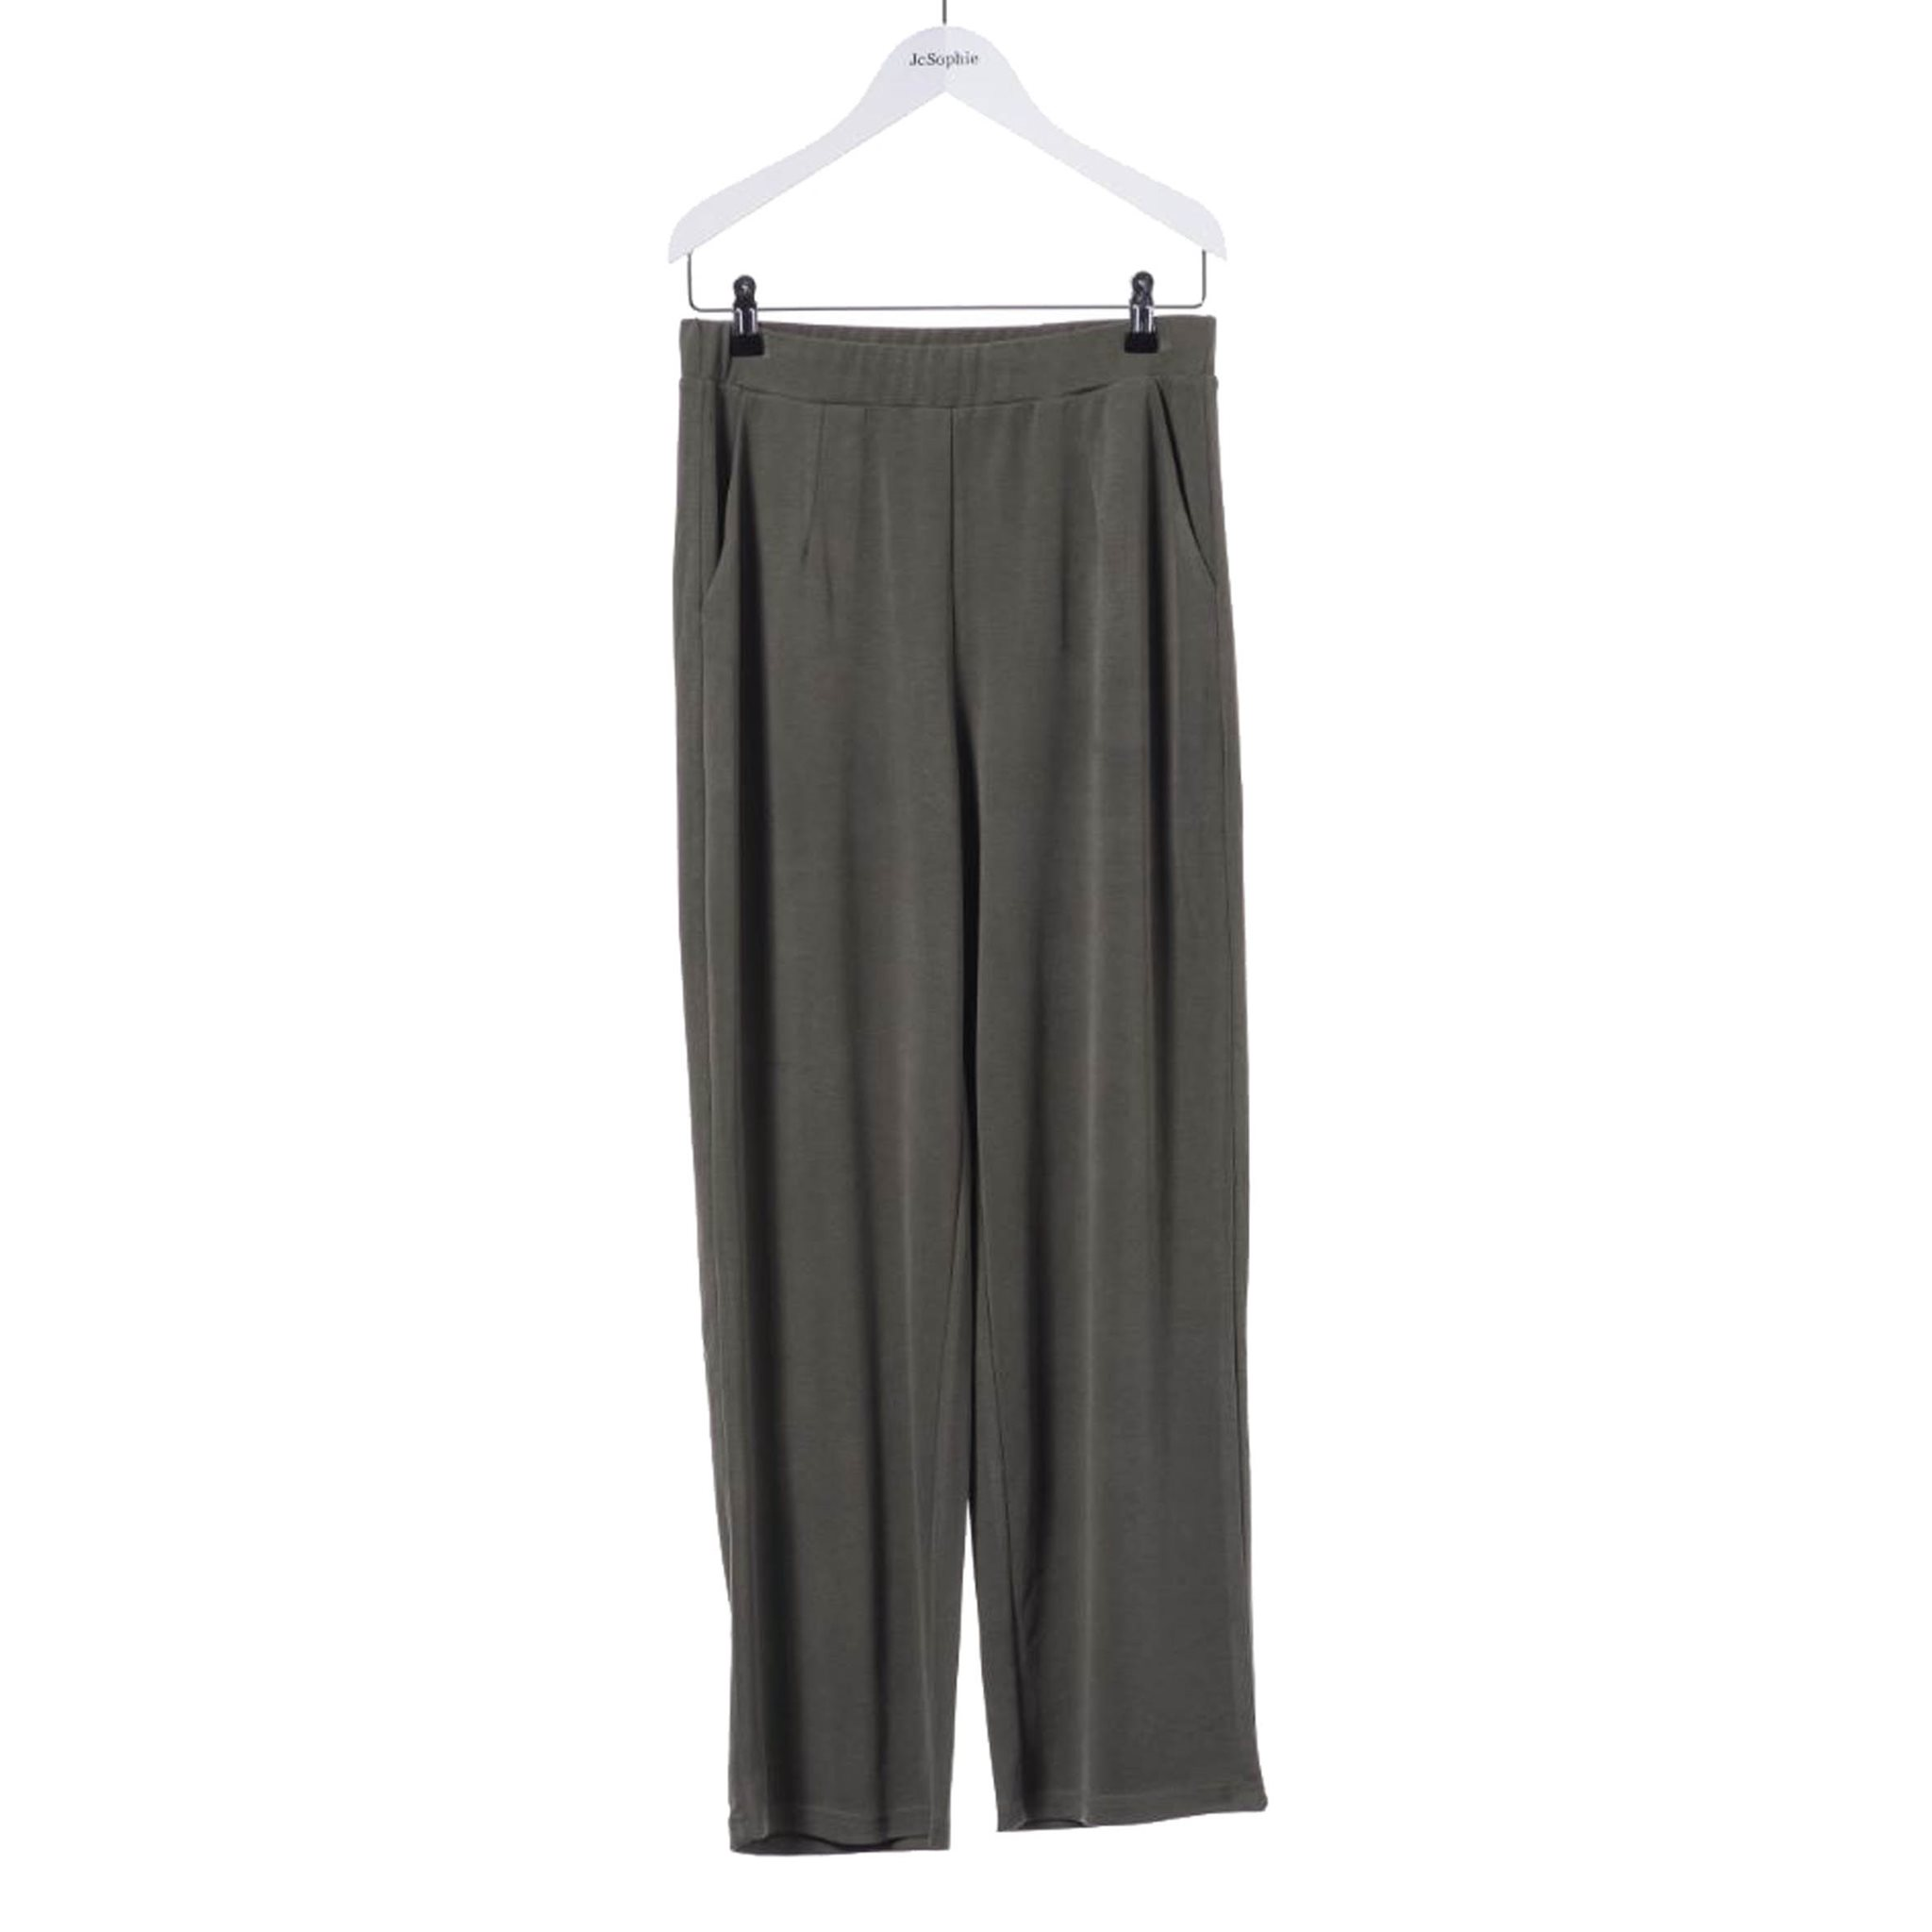 Earth trouser Jc SOPHIE